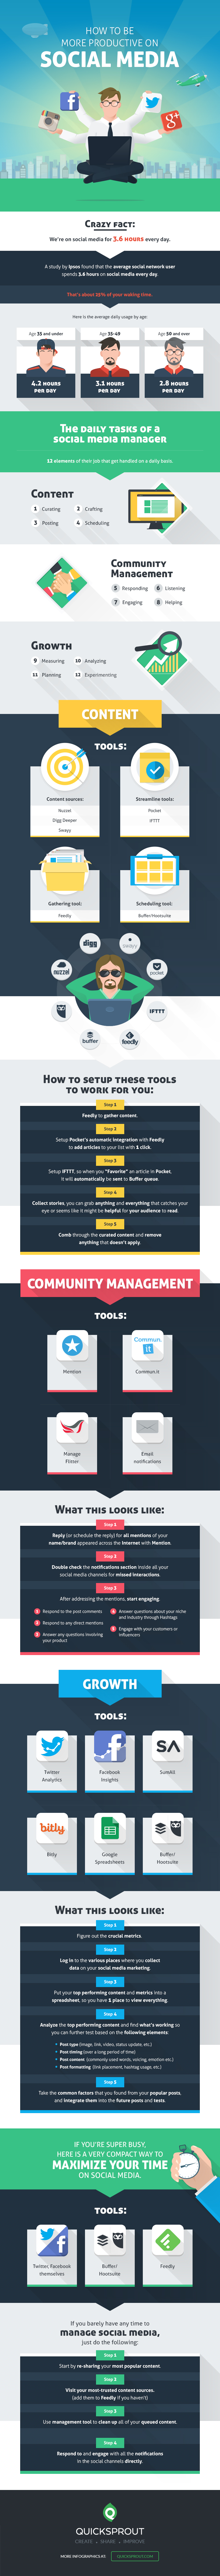 How to Be More Productive On Social Media - social media marketing infographic